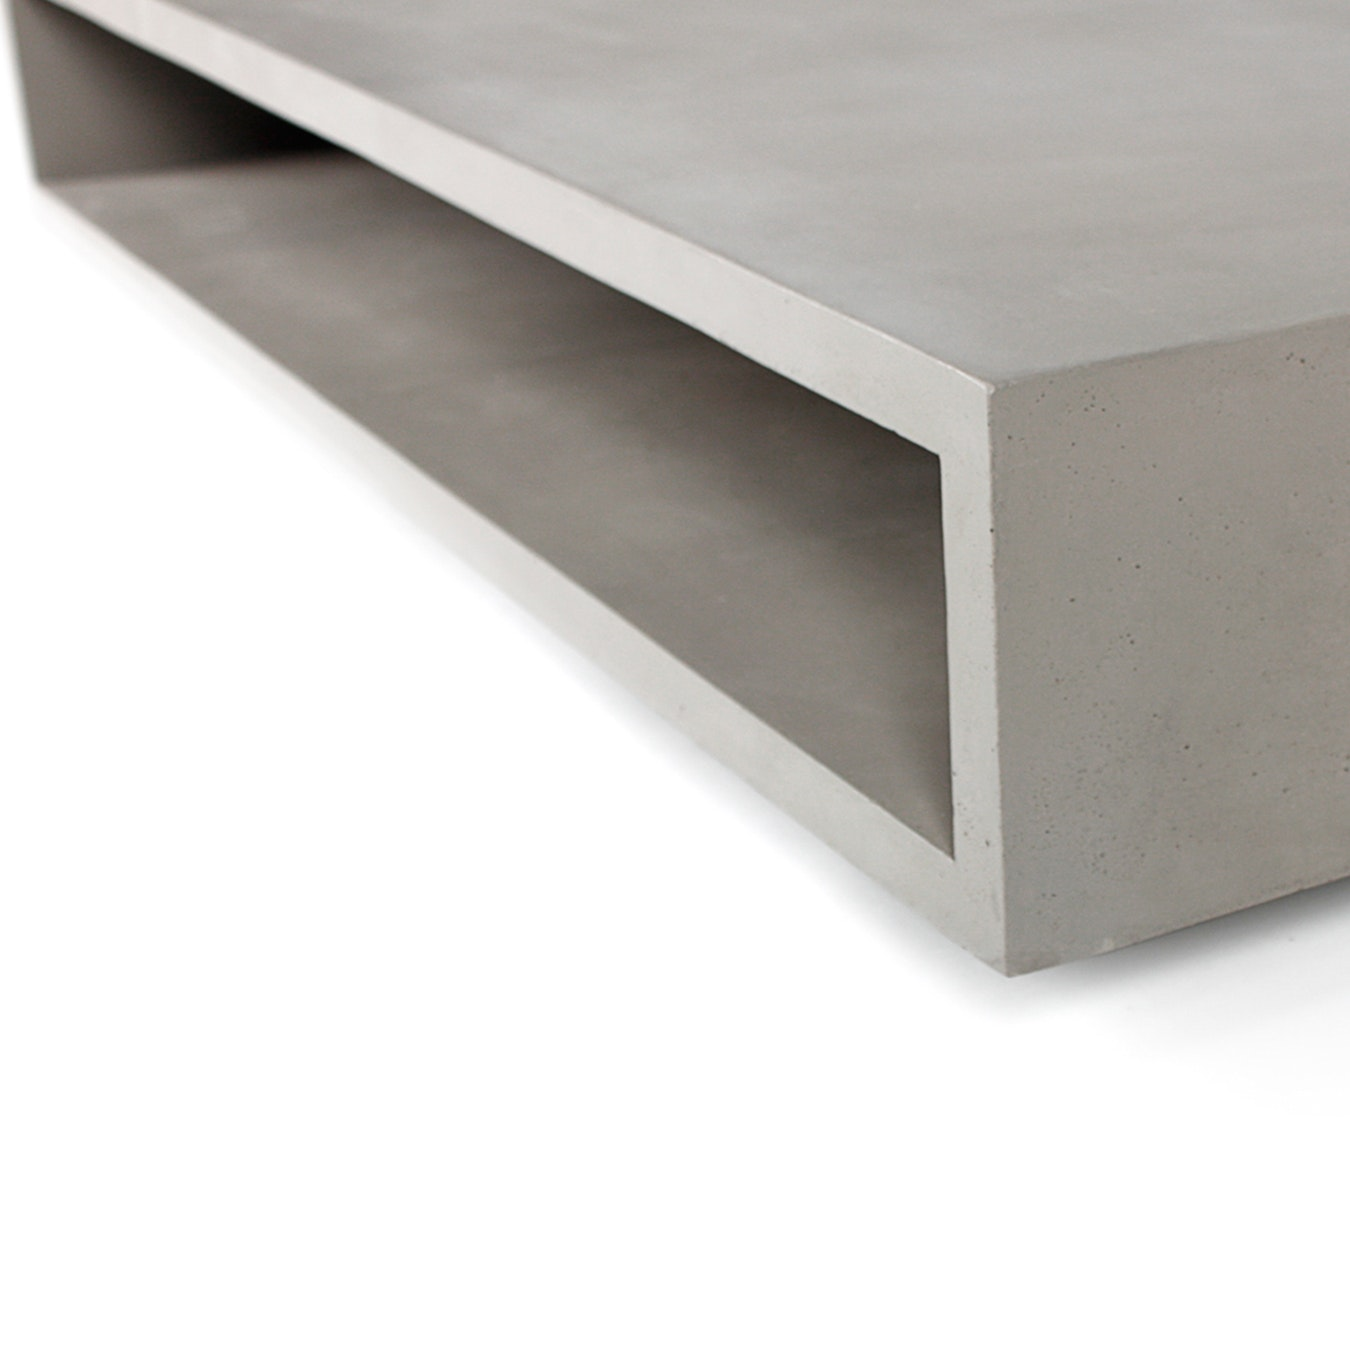 Concrete Monobloc Coffee Table W Metal Legs By Lyon Beton Fy